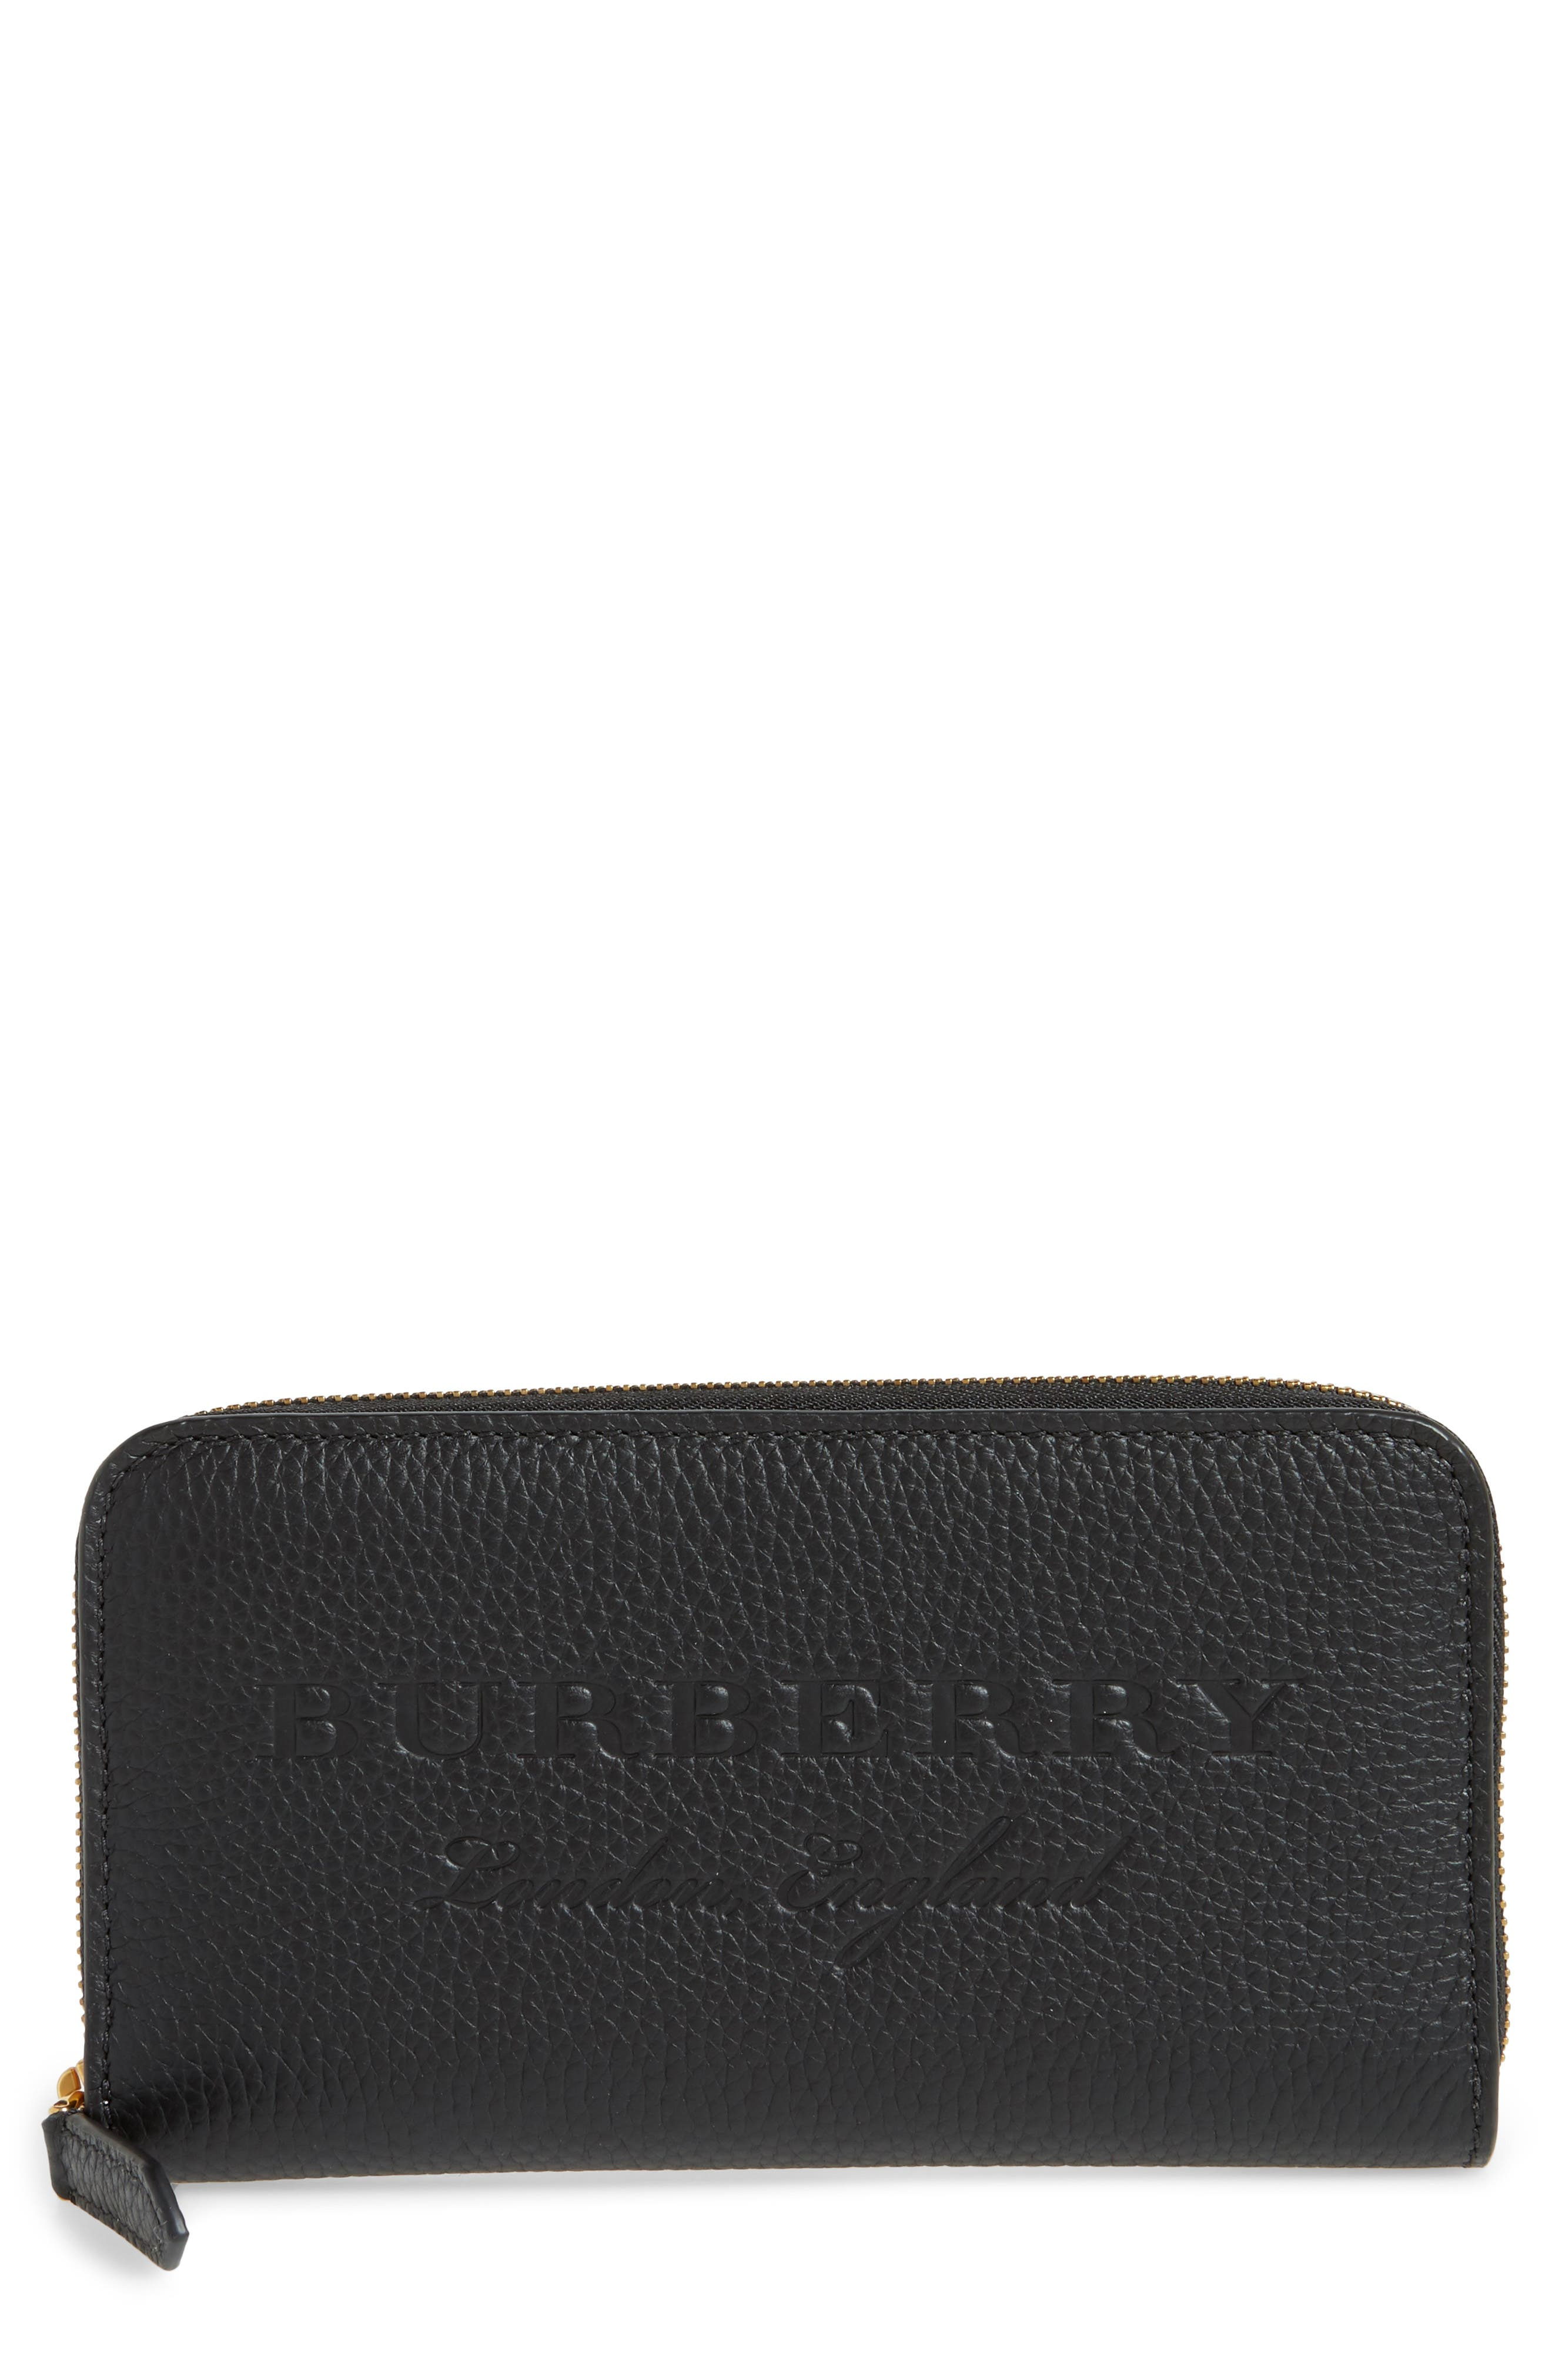 Leather Zip-Around Wallet,                             Main thumbnail 1, color,                             Black